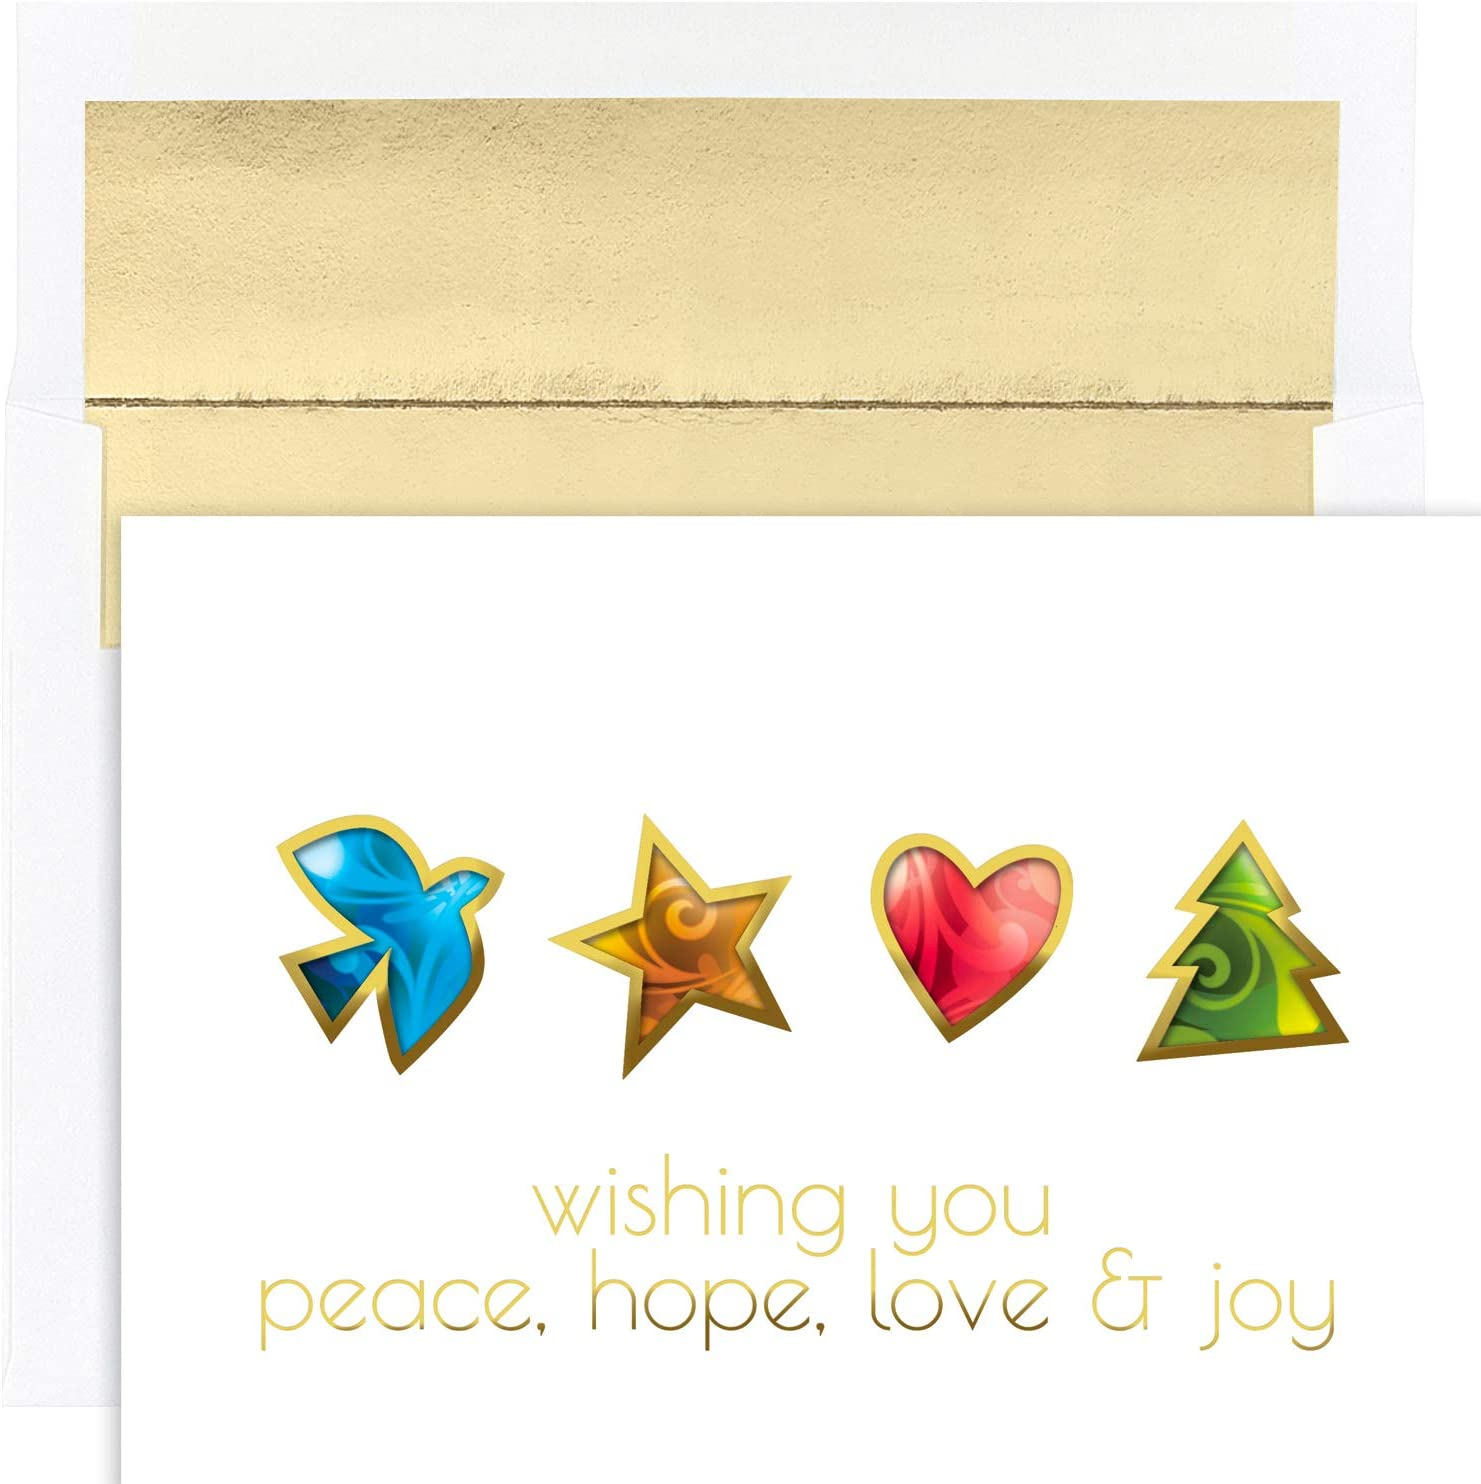 Masterpiece Studios Holiday Collection 16 Cards / 16 Foil Lined Envelopes, Peace Hope Love & Joy